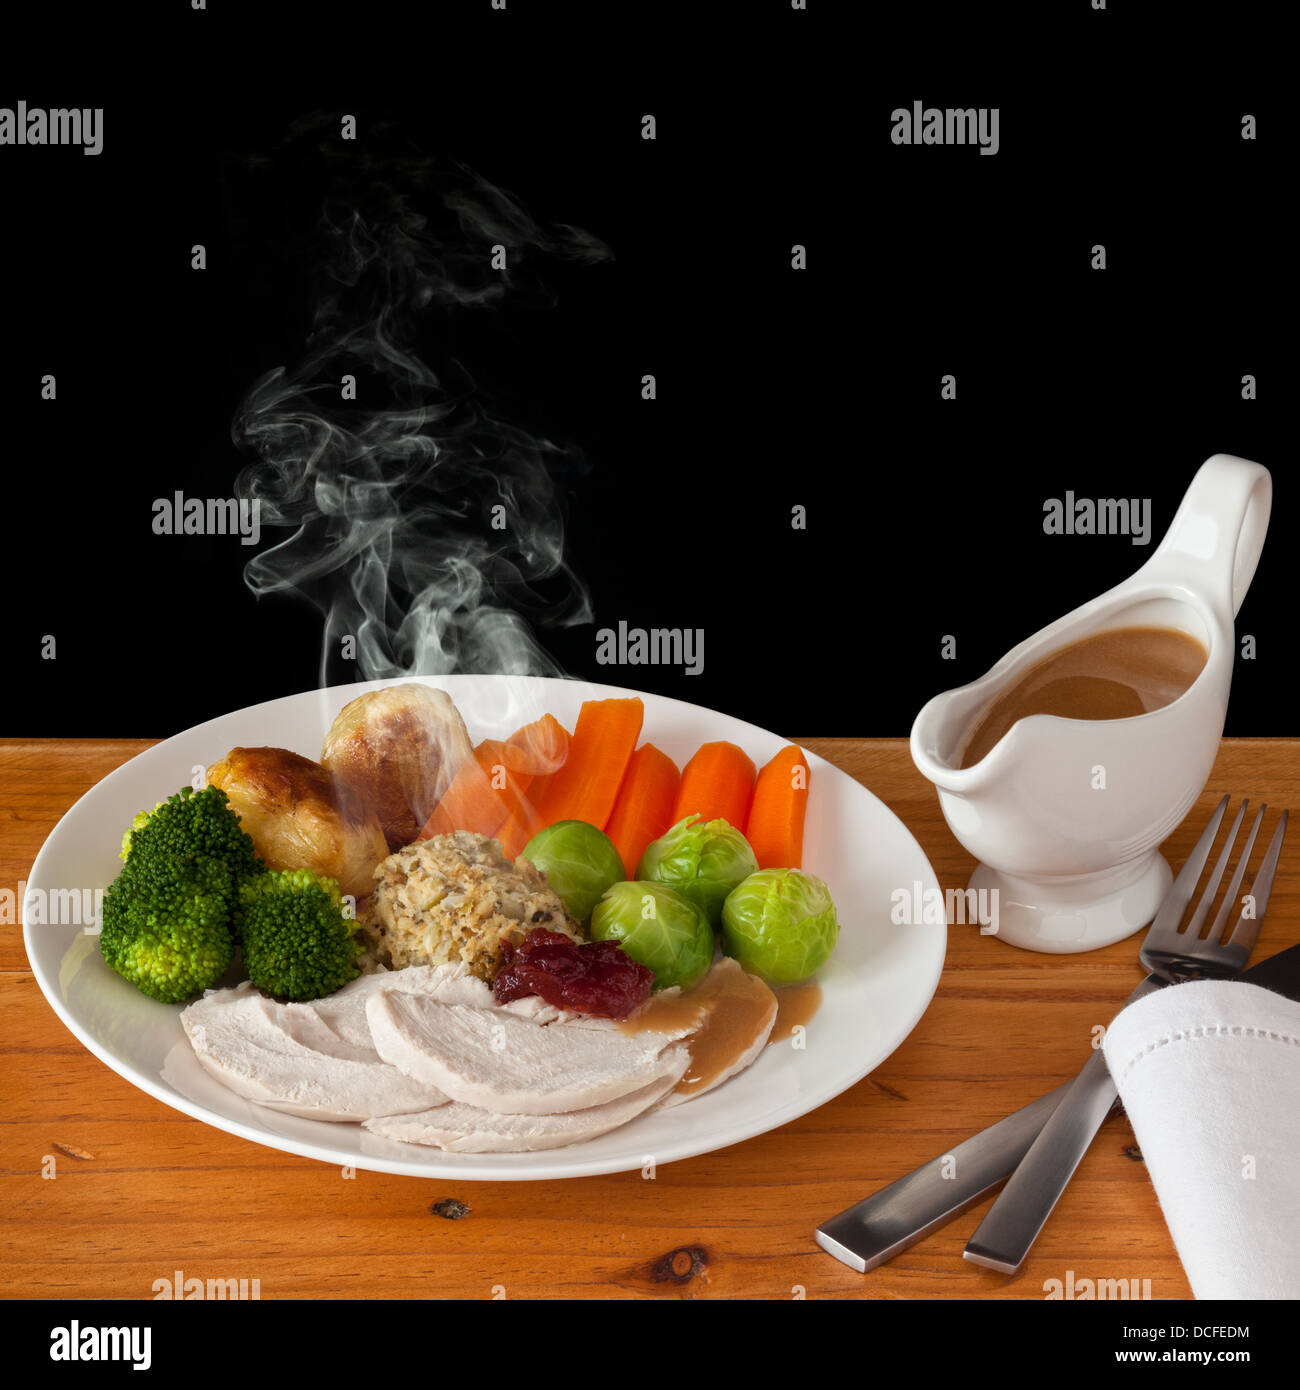 Roast Chicken Dinner - a typical Christmas lunch with visible steam rising, with space for your own text. - Stock Image